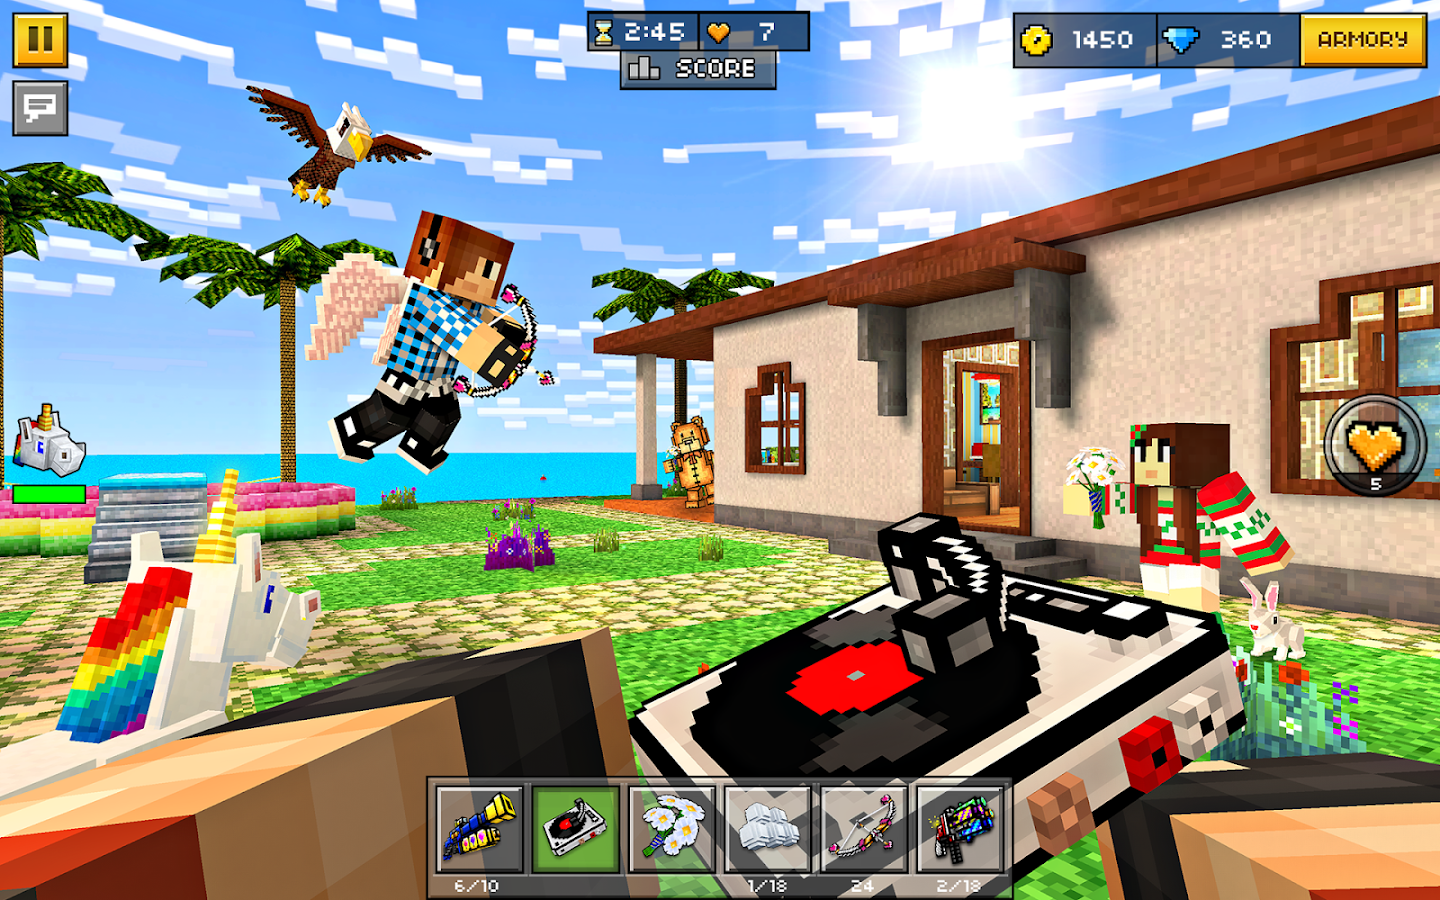 Pixel Gun 3D (Pocket Edition) Screenshot 13